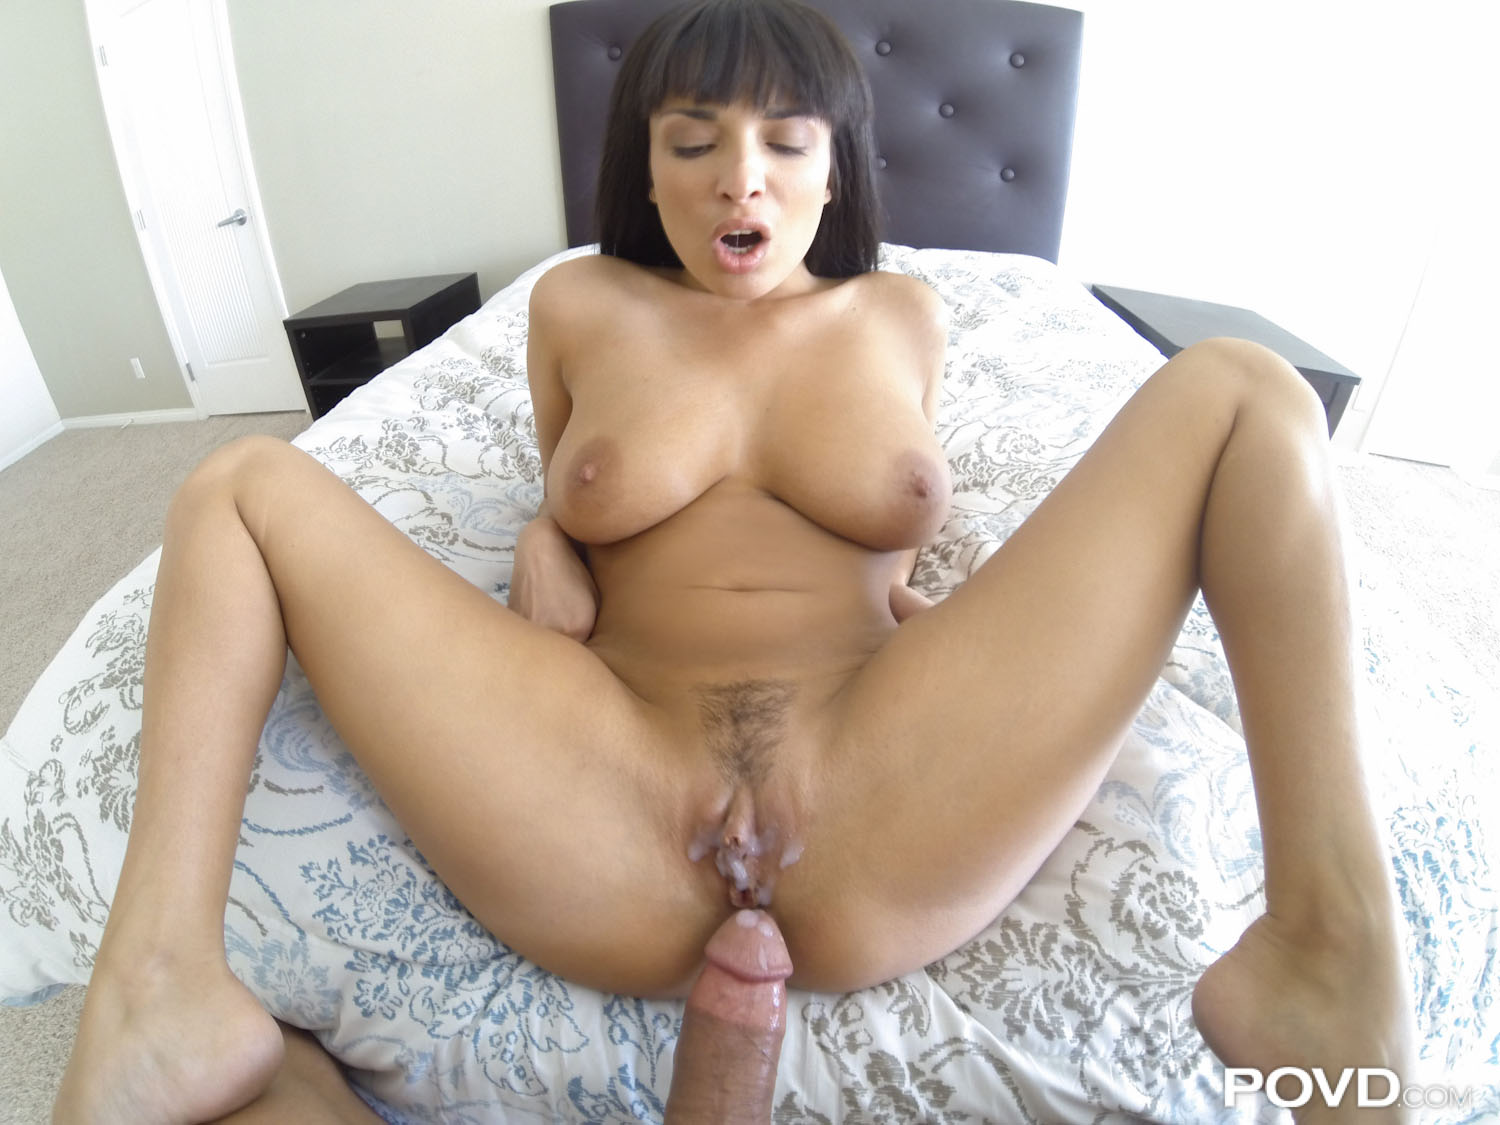 french porn french porn povd french pov